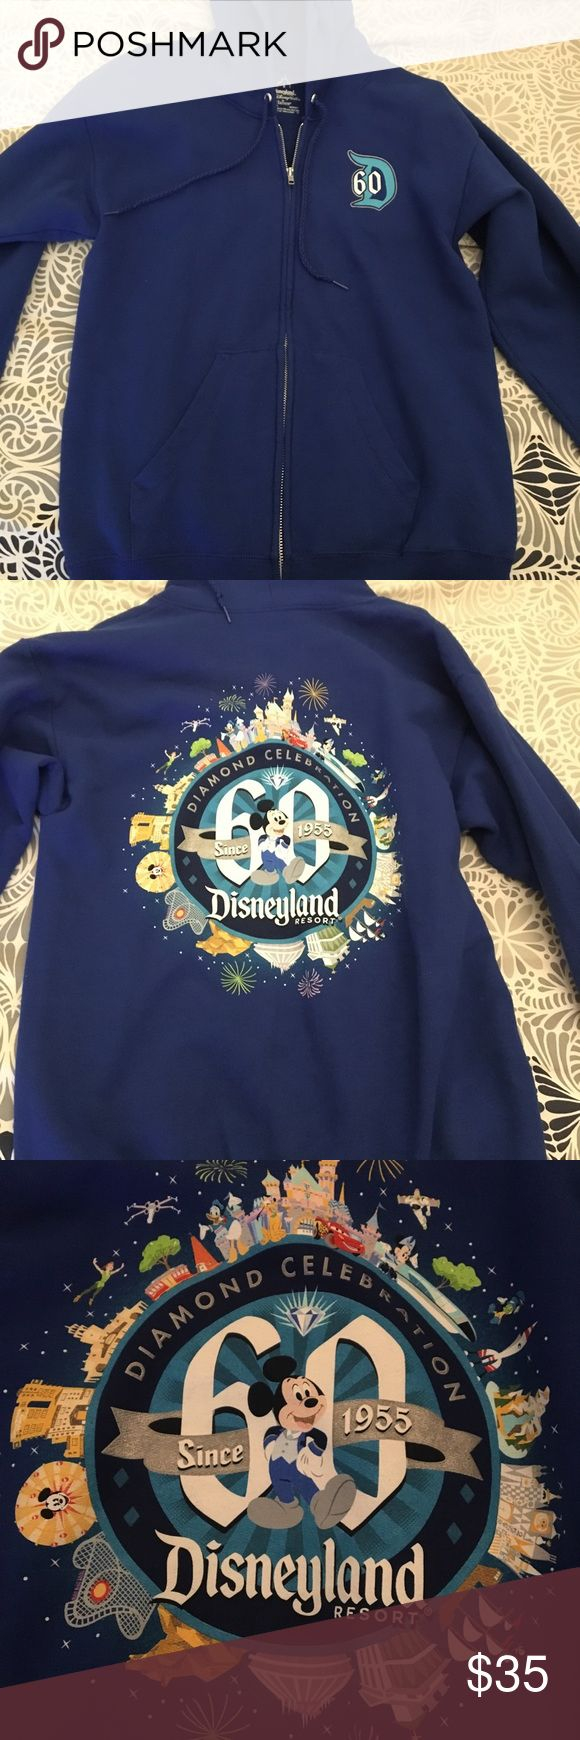 Disneyland's 60th Anniversary Hoodie Disney's Diamond Celebration hoodie, for their 60th anniversary! This hoodie is a gorgeous blue, thick, and is great for keeping yourself warm! There's a beautiful print on the back of some of the most prominent rides/features and a cute little D 60 in front. No flaws! Was just too loose for me, so I barely reached for it, so it's just about in perfect condition! Disney Tops Sweatshirts & Hoodies